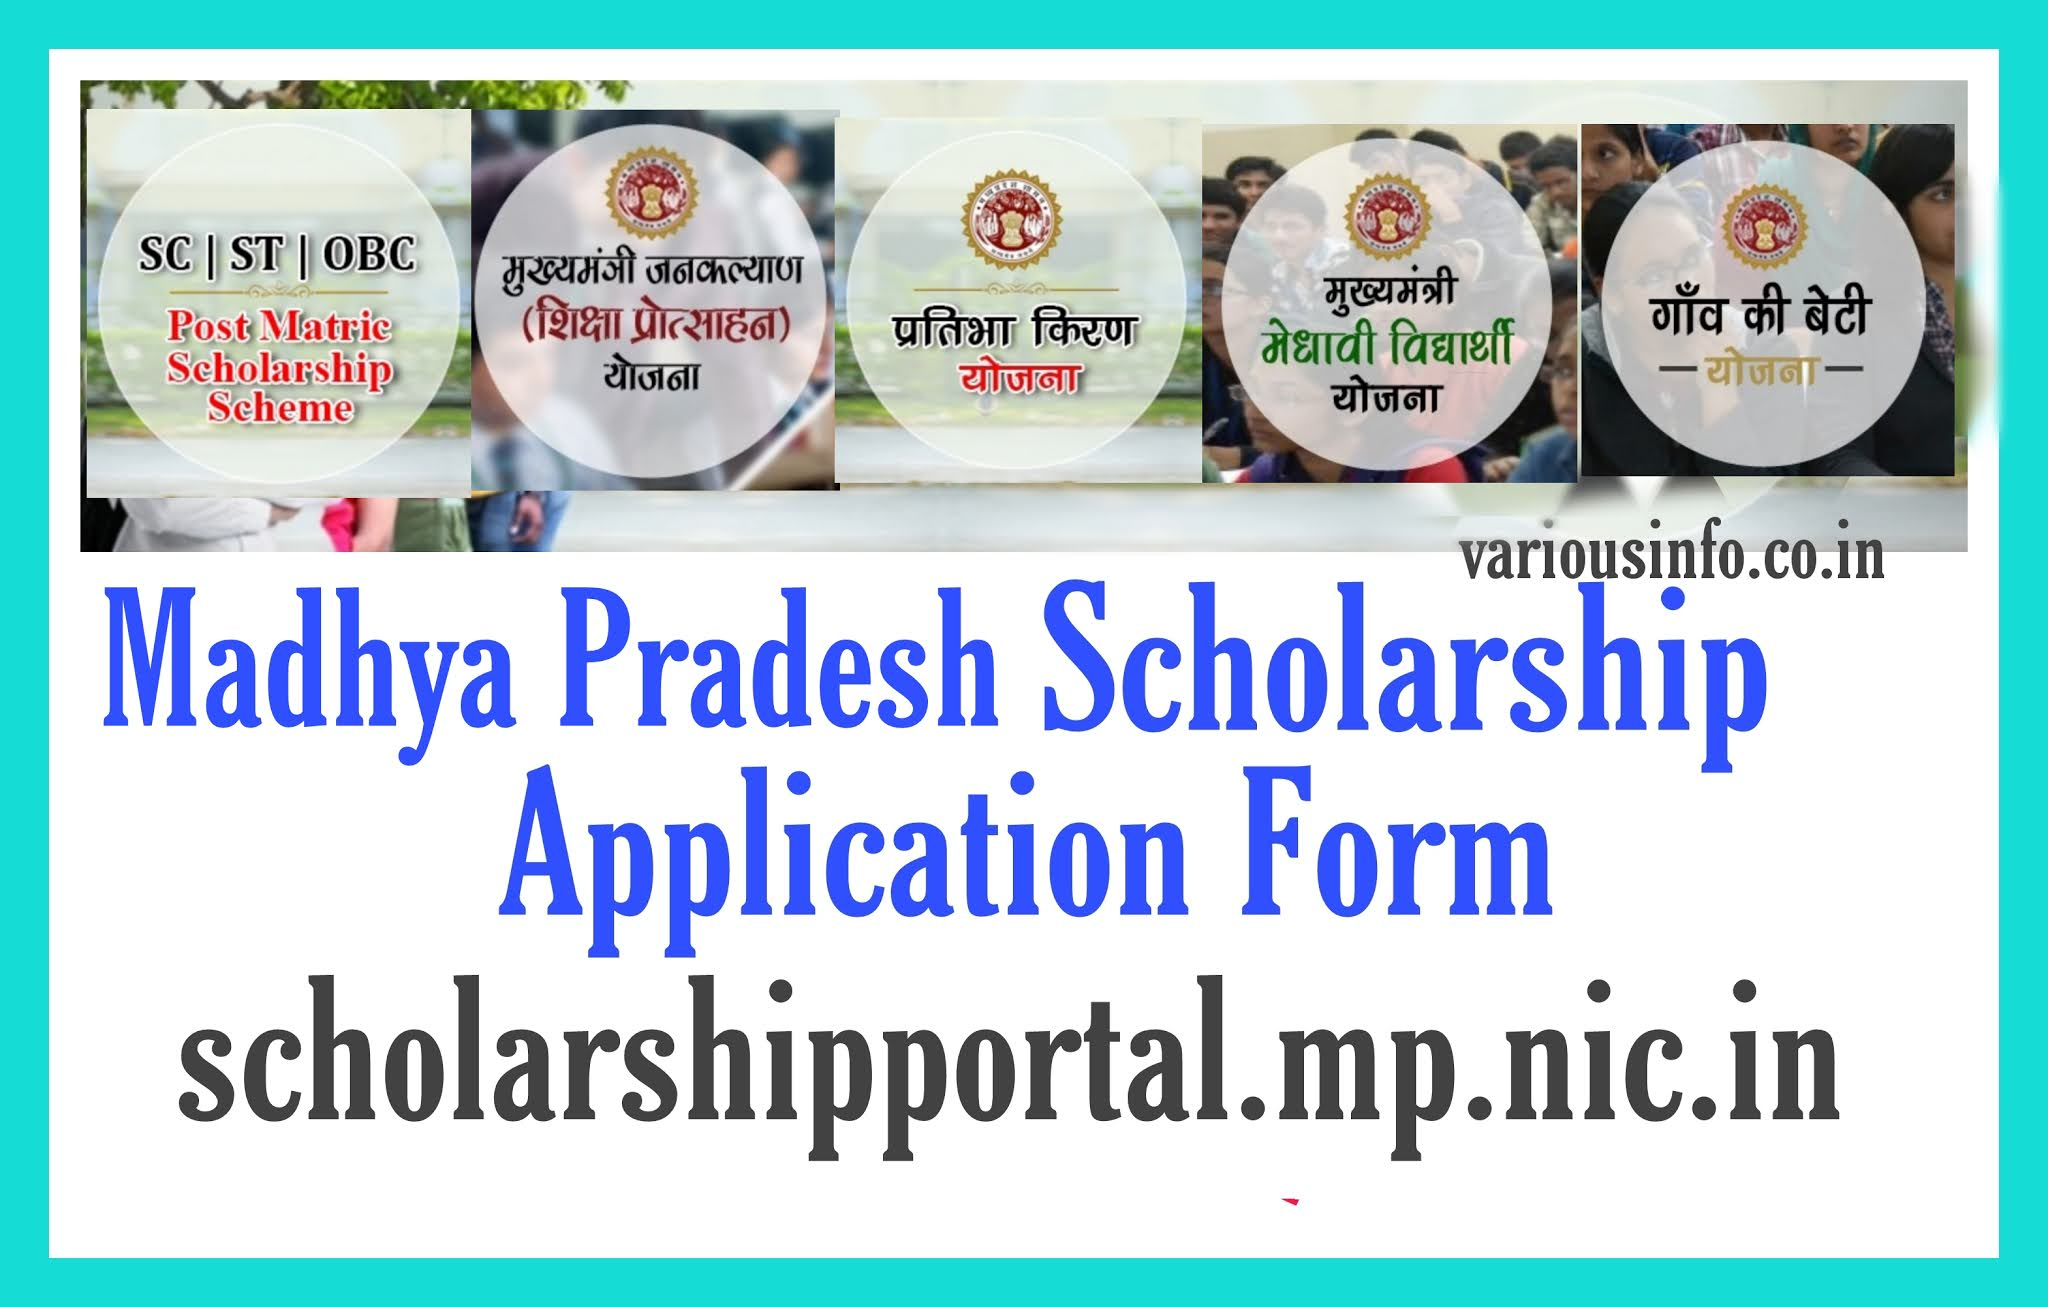 MP Scholarship 2020 Portal Madhya Pradesh Scholarship @ scholarshipportal.mp.nic.in Registration, Scholarship Track Status, Awards Application Form 2020 Name Search KYC Students can apply for MP Scholarship and check status here.